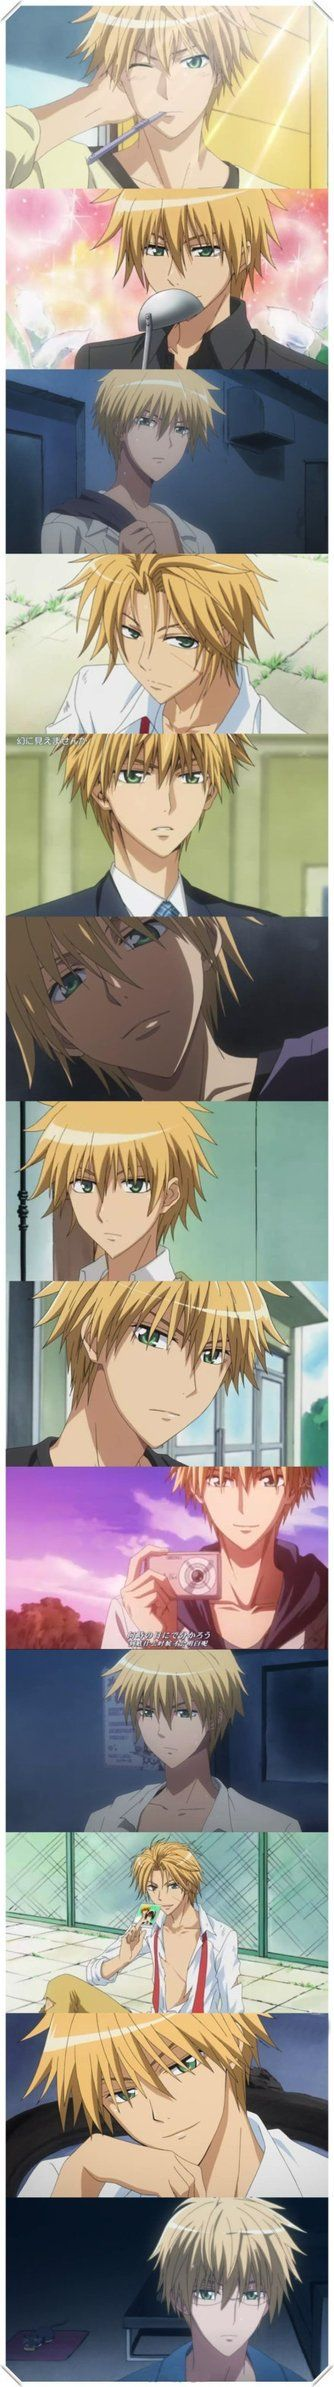 Kaichou Wa Maid-sama- Usui Takumi  Lol, now tell me nobody's perfect....